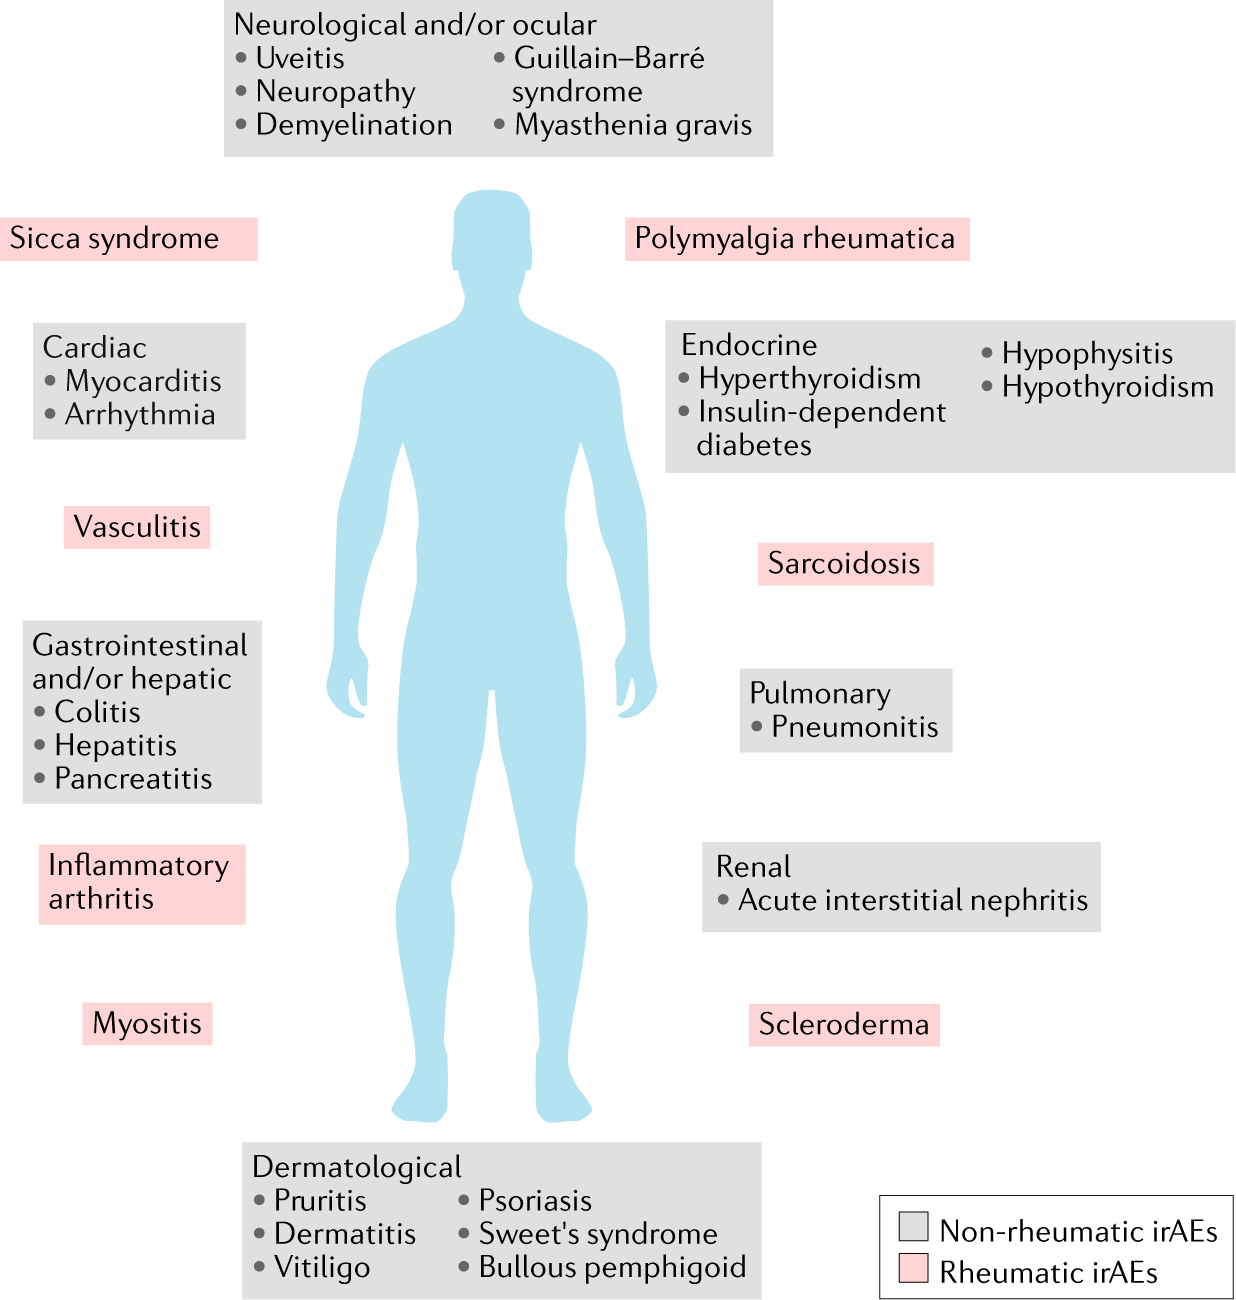 Rheumatic immune-related adverse events from cancer immunotherapy